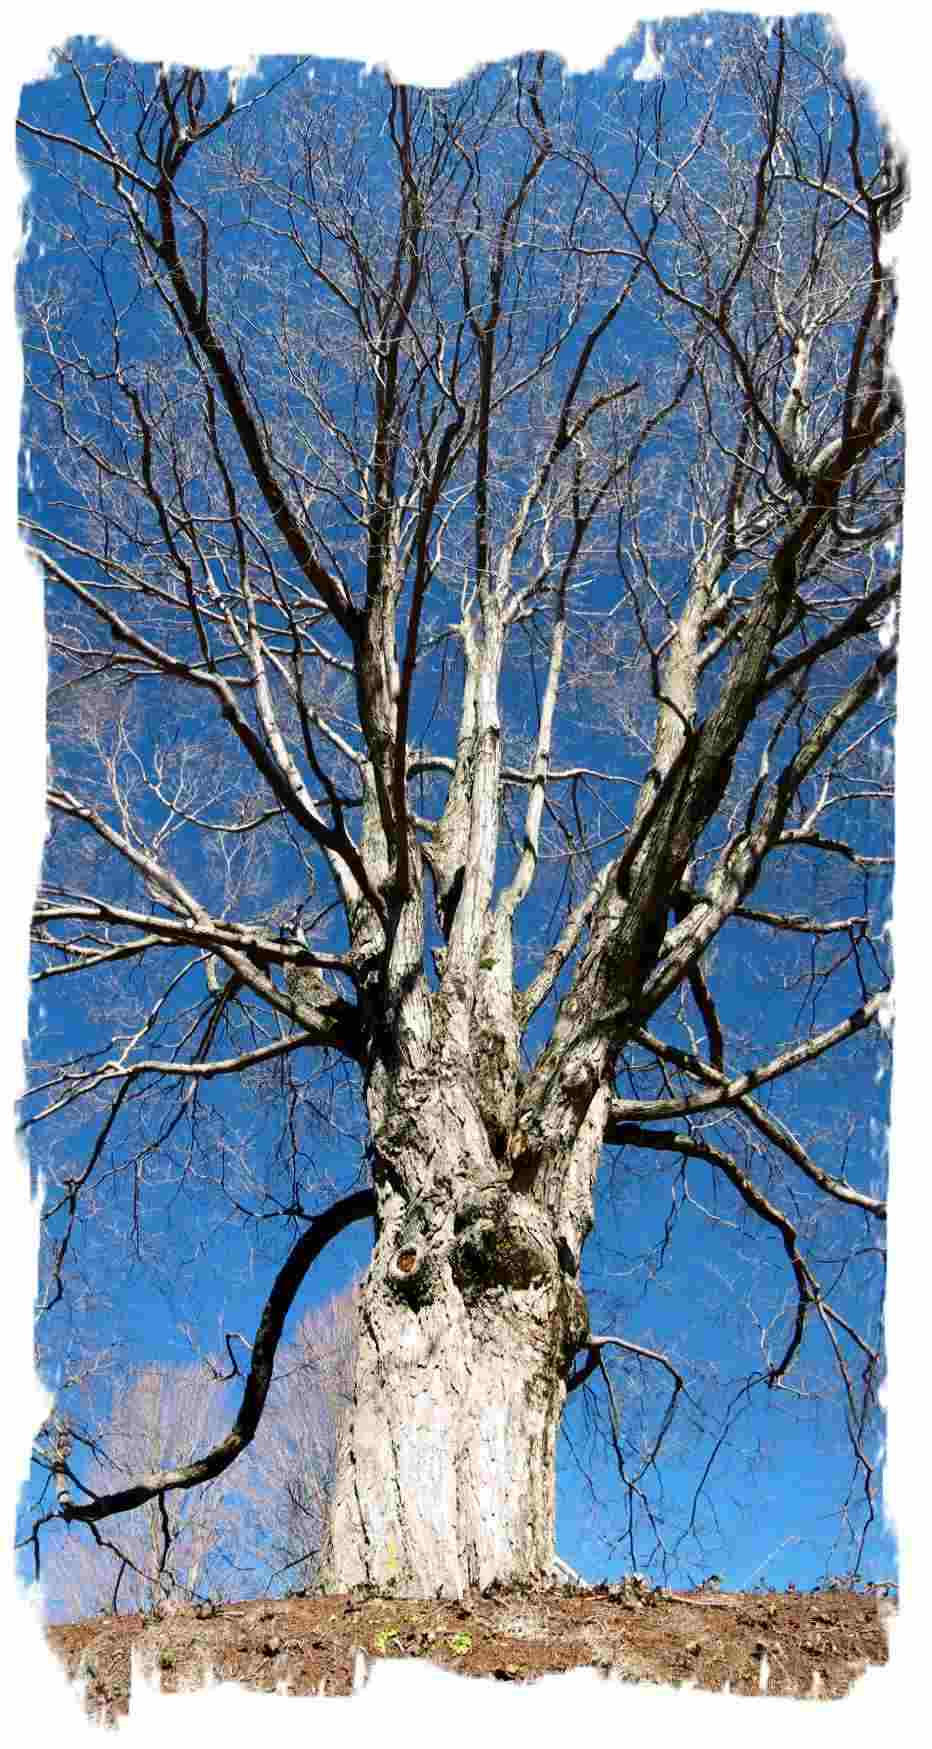 tree against deep blue sky of the ridge mount barman dilip